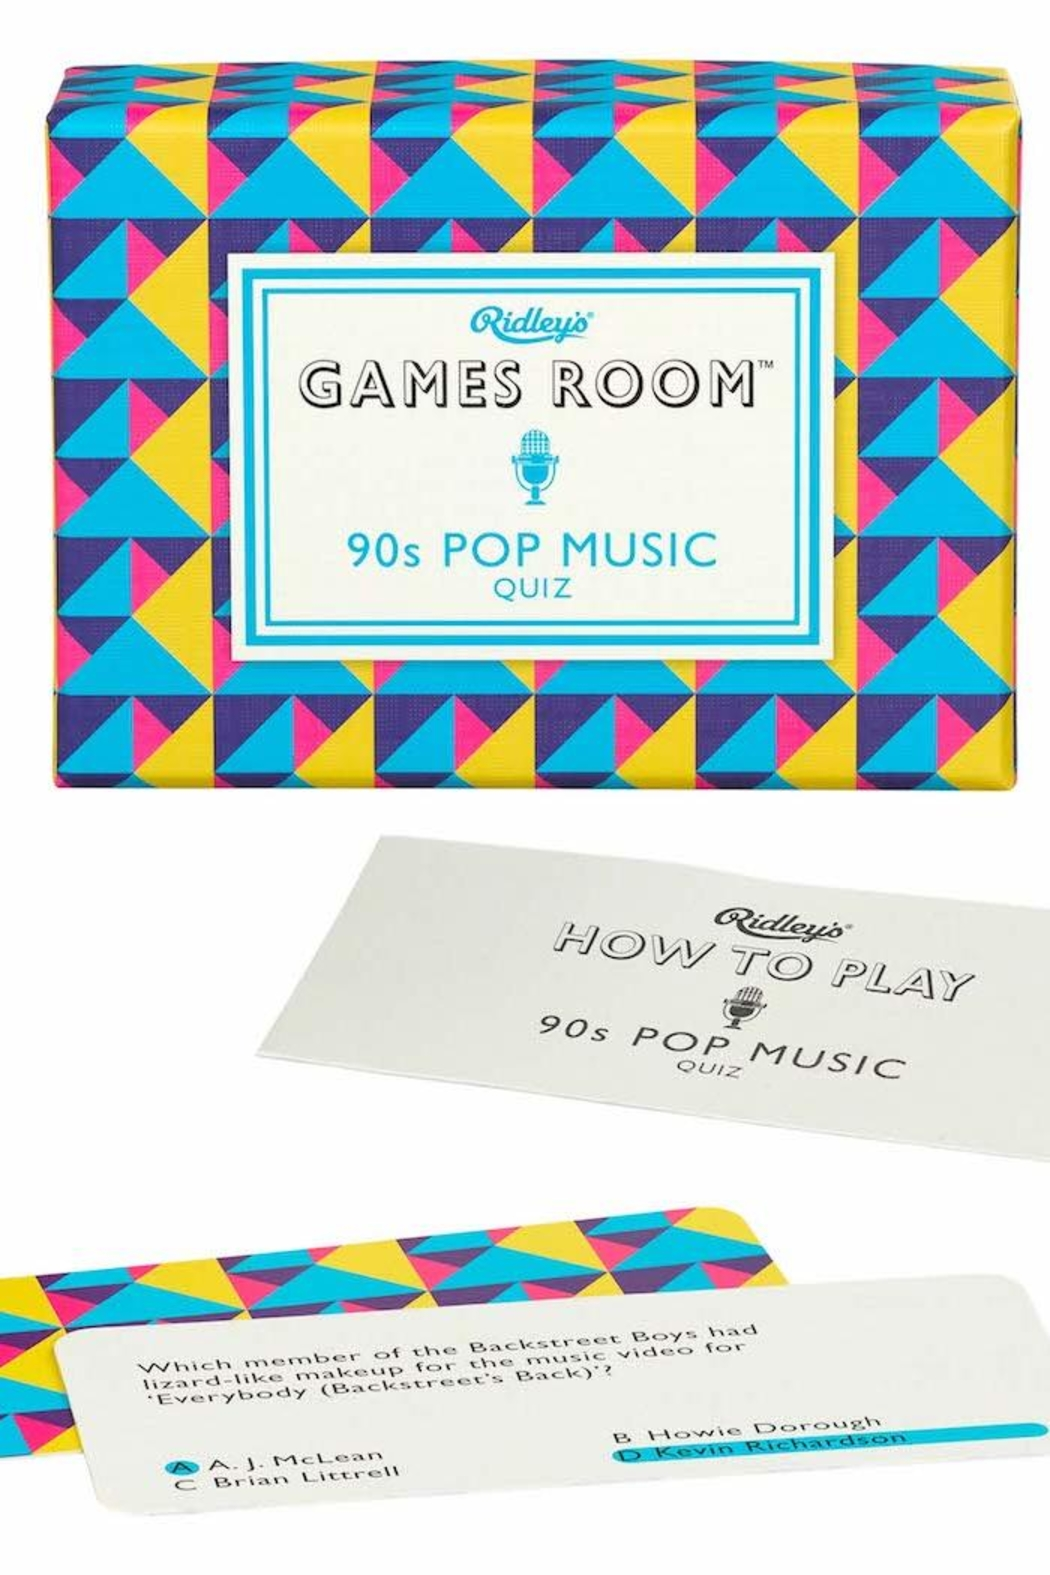 Ridley's Games Room 90s Pop Music - Main Image